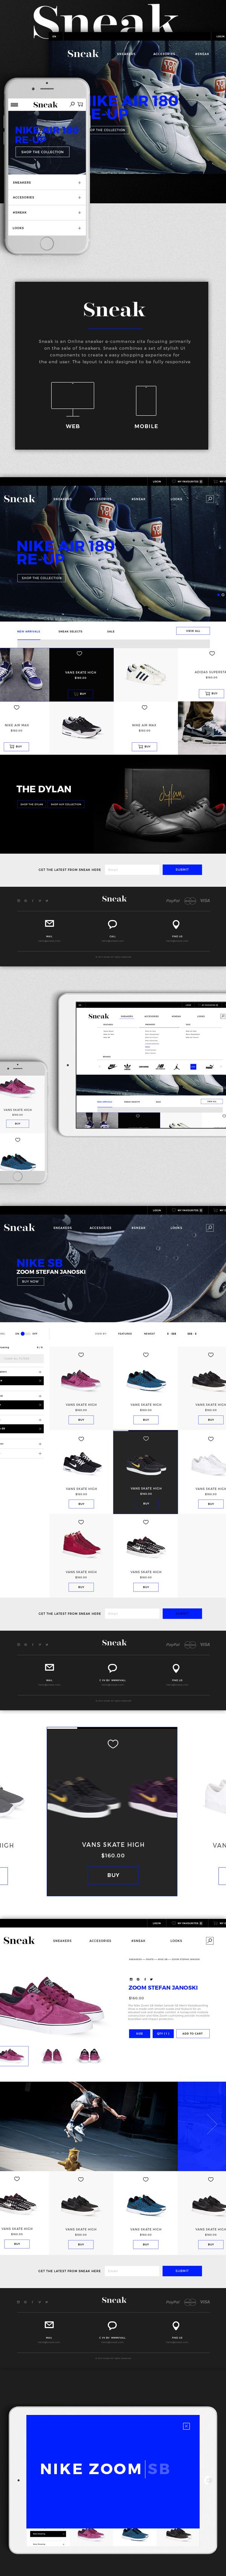 Sneak on Behance